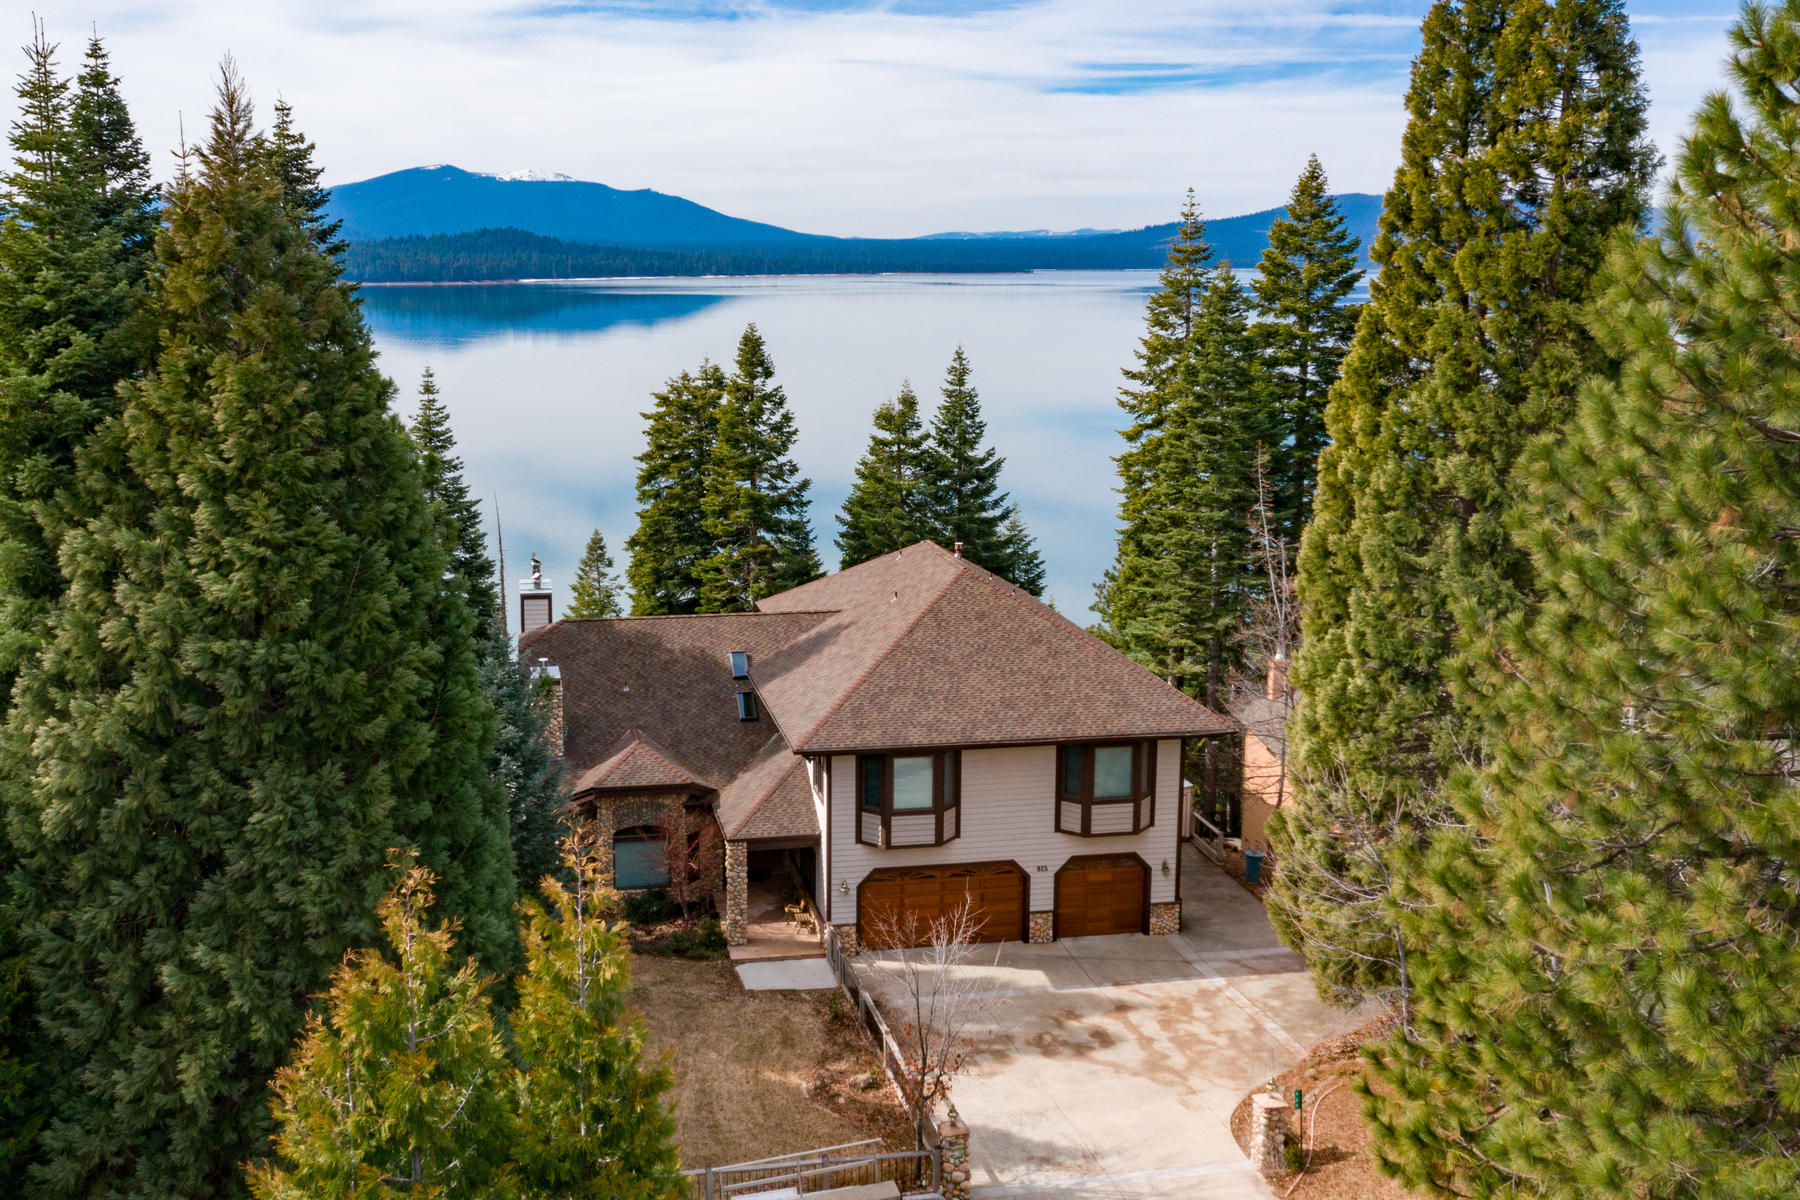 Property 为 销售 在 Beautiful lake front home 925 Lassen View Drive Lake Almanor, 加利福尼亚州 96137 美国